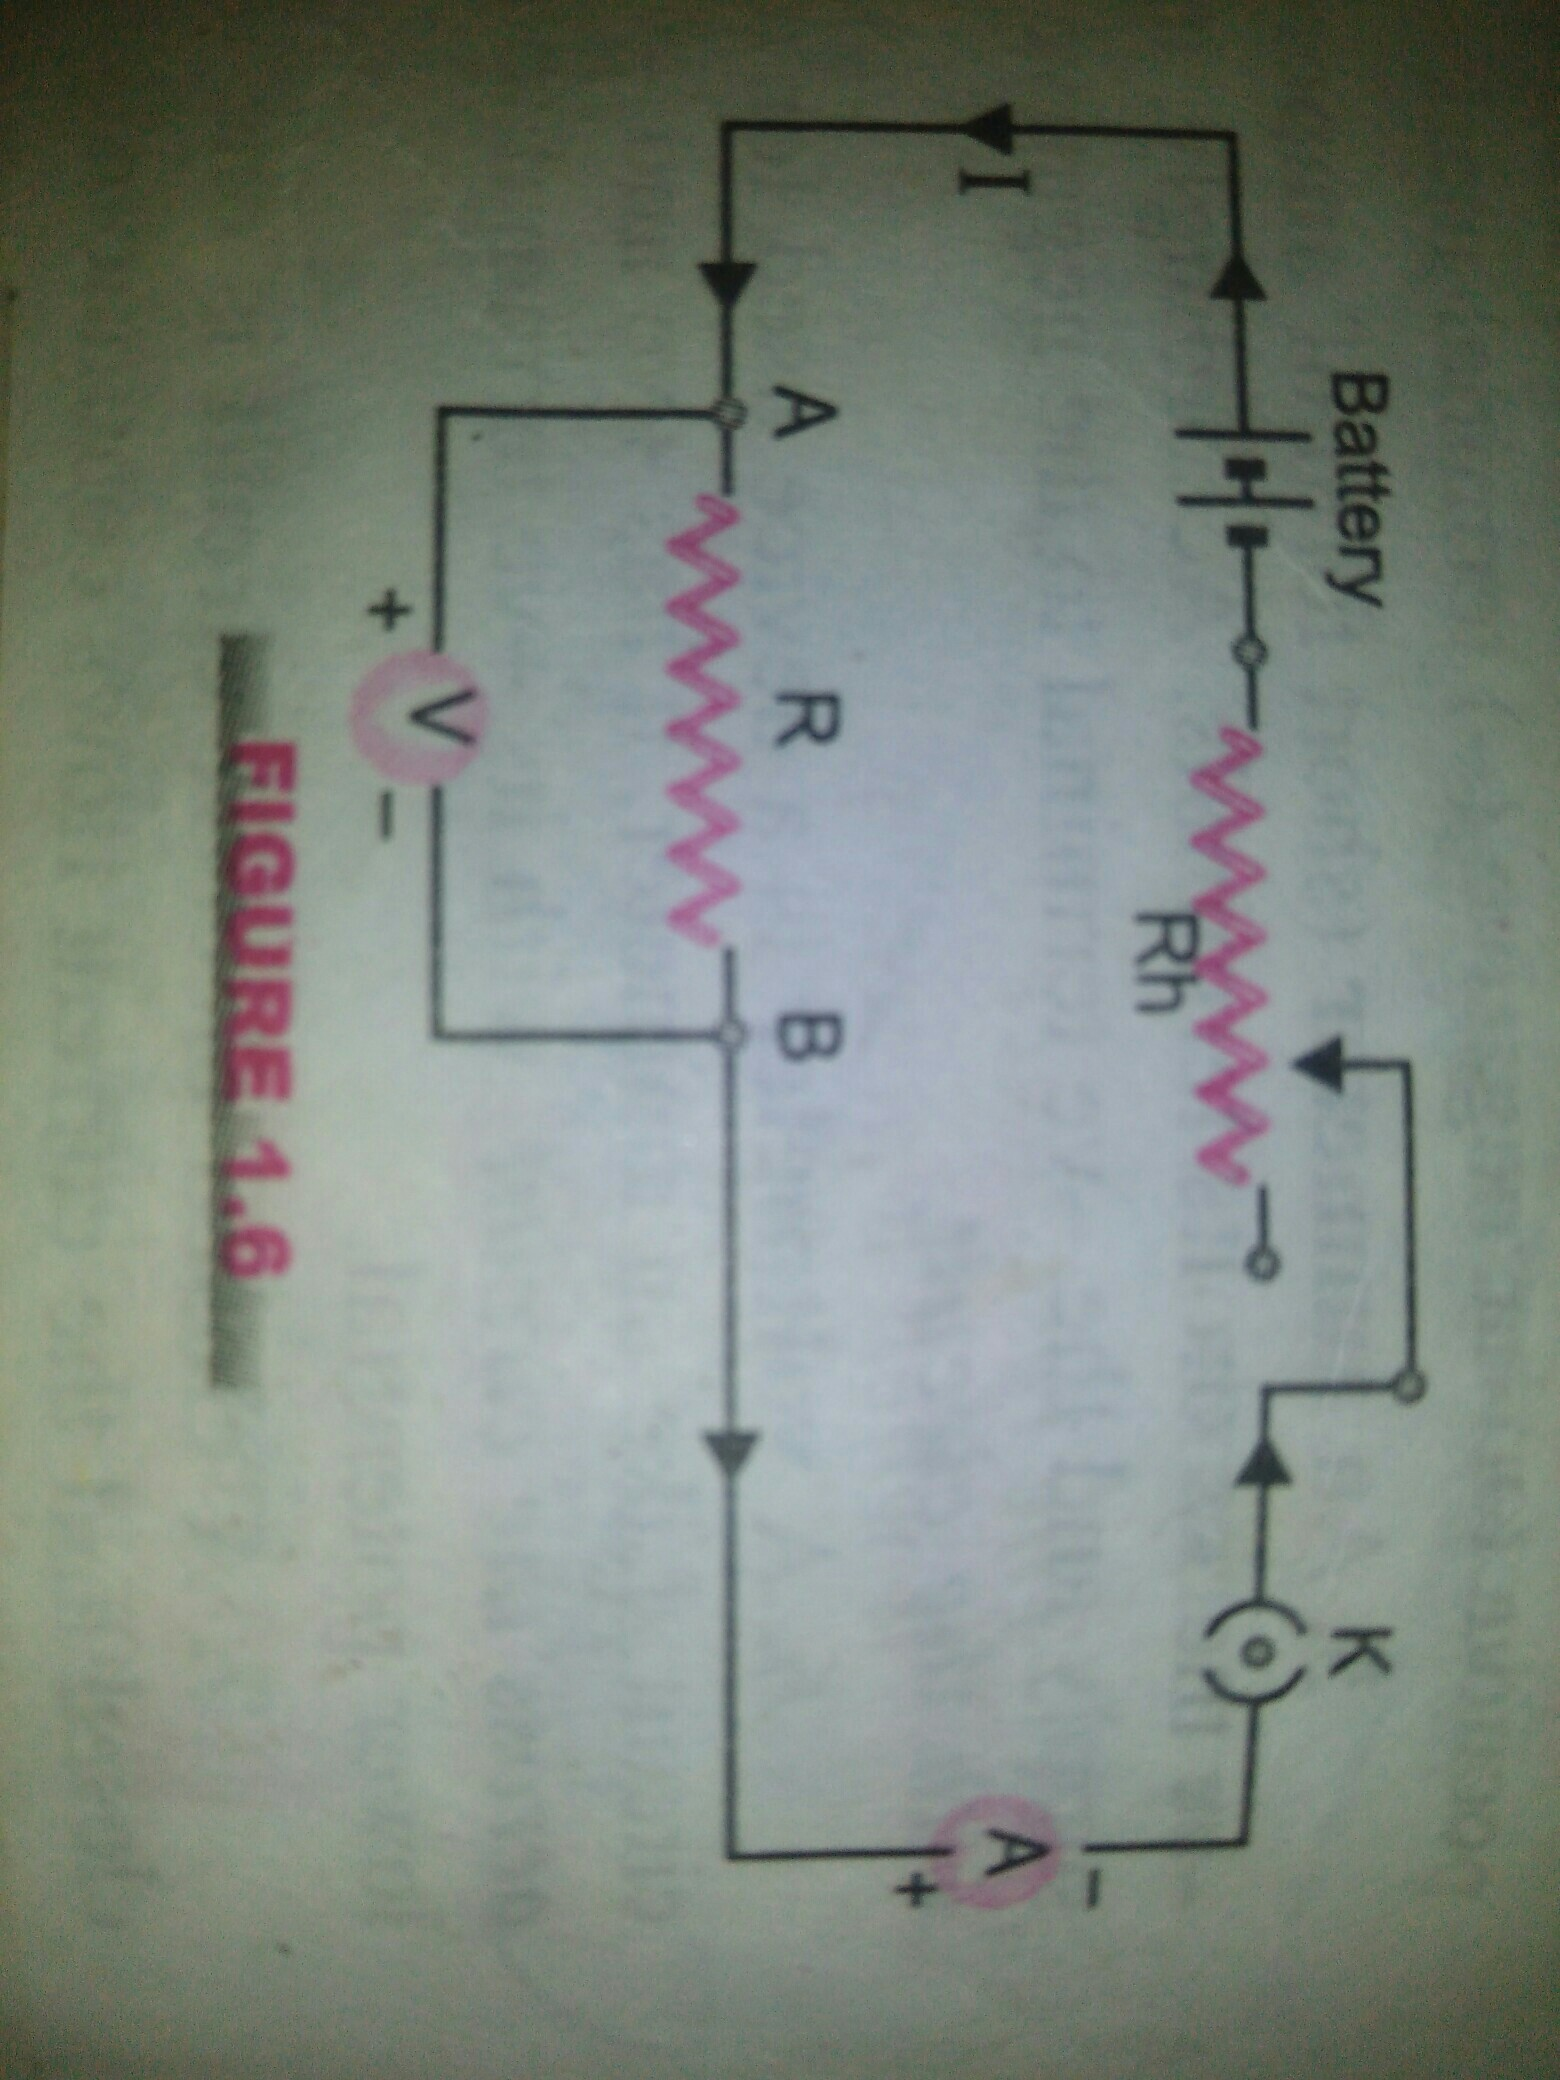 58527a2f4c9d09 diagram of electric circuit with the help of voltmeter, ammeter ...